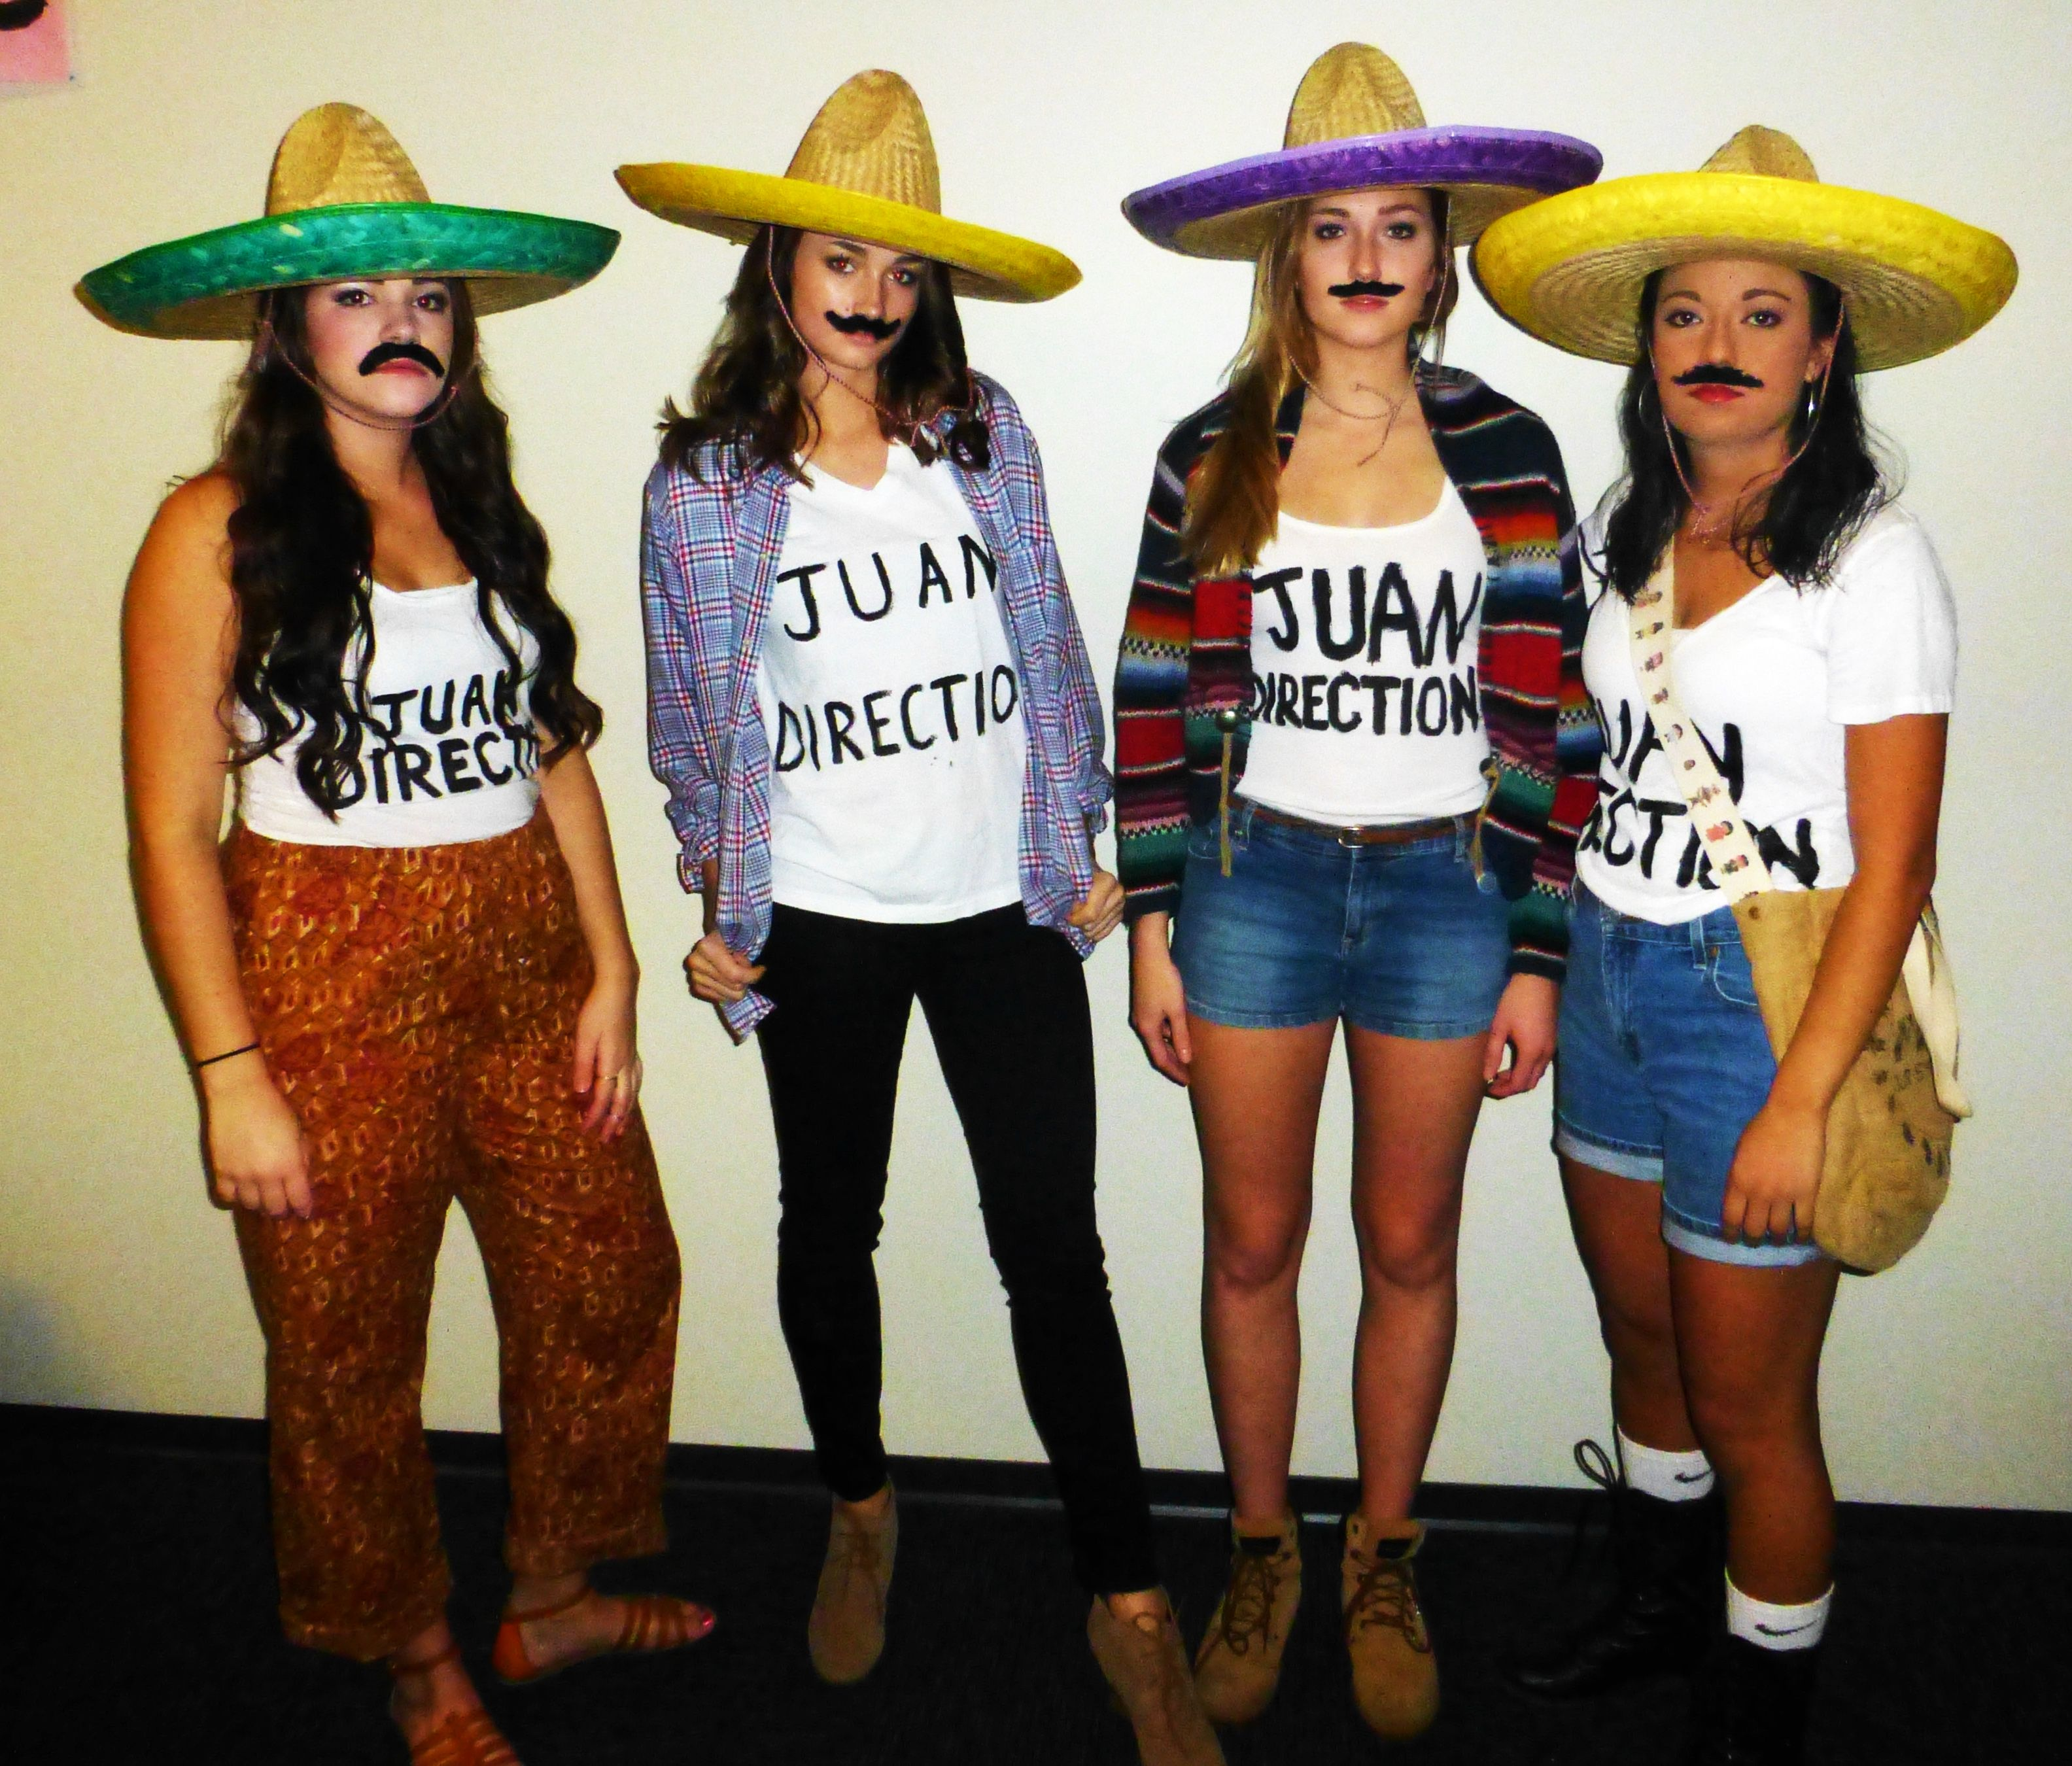 Had to do it guys juan direction aka best halloween costume ever